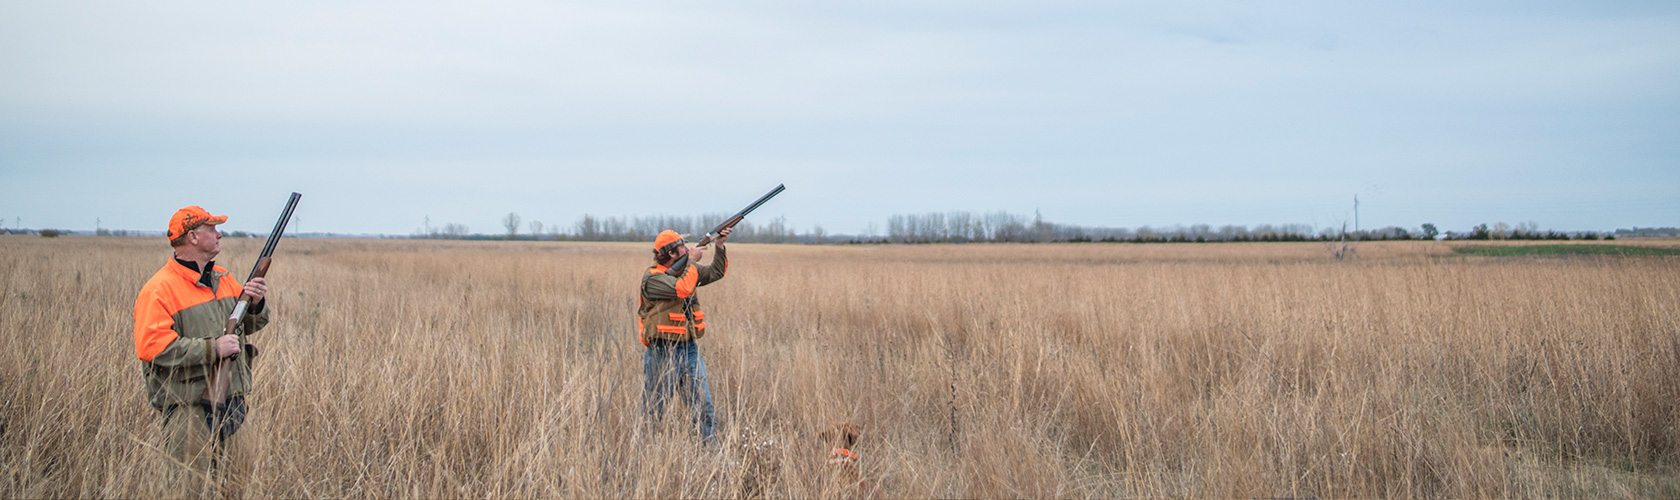 Hunting bbb lodge for South dakota out of state fishing license